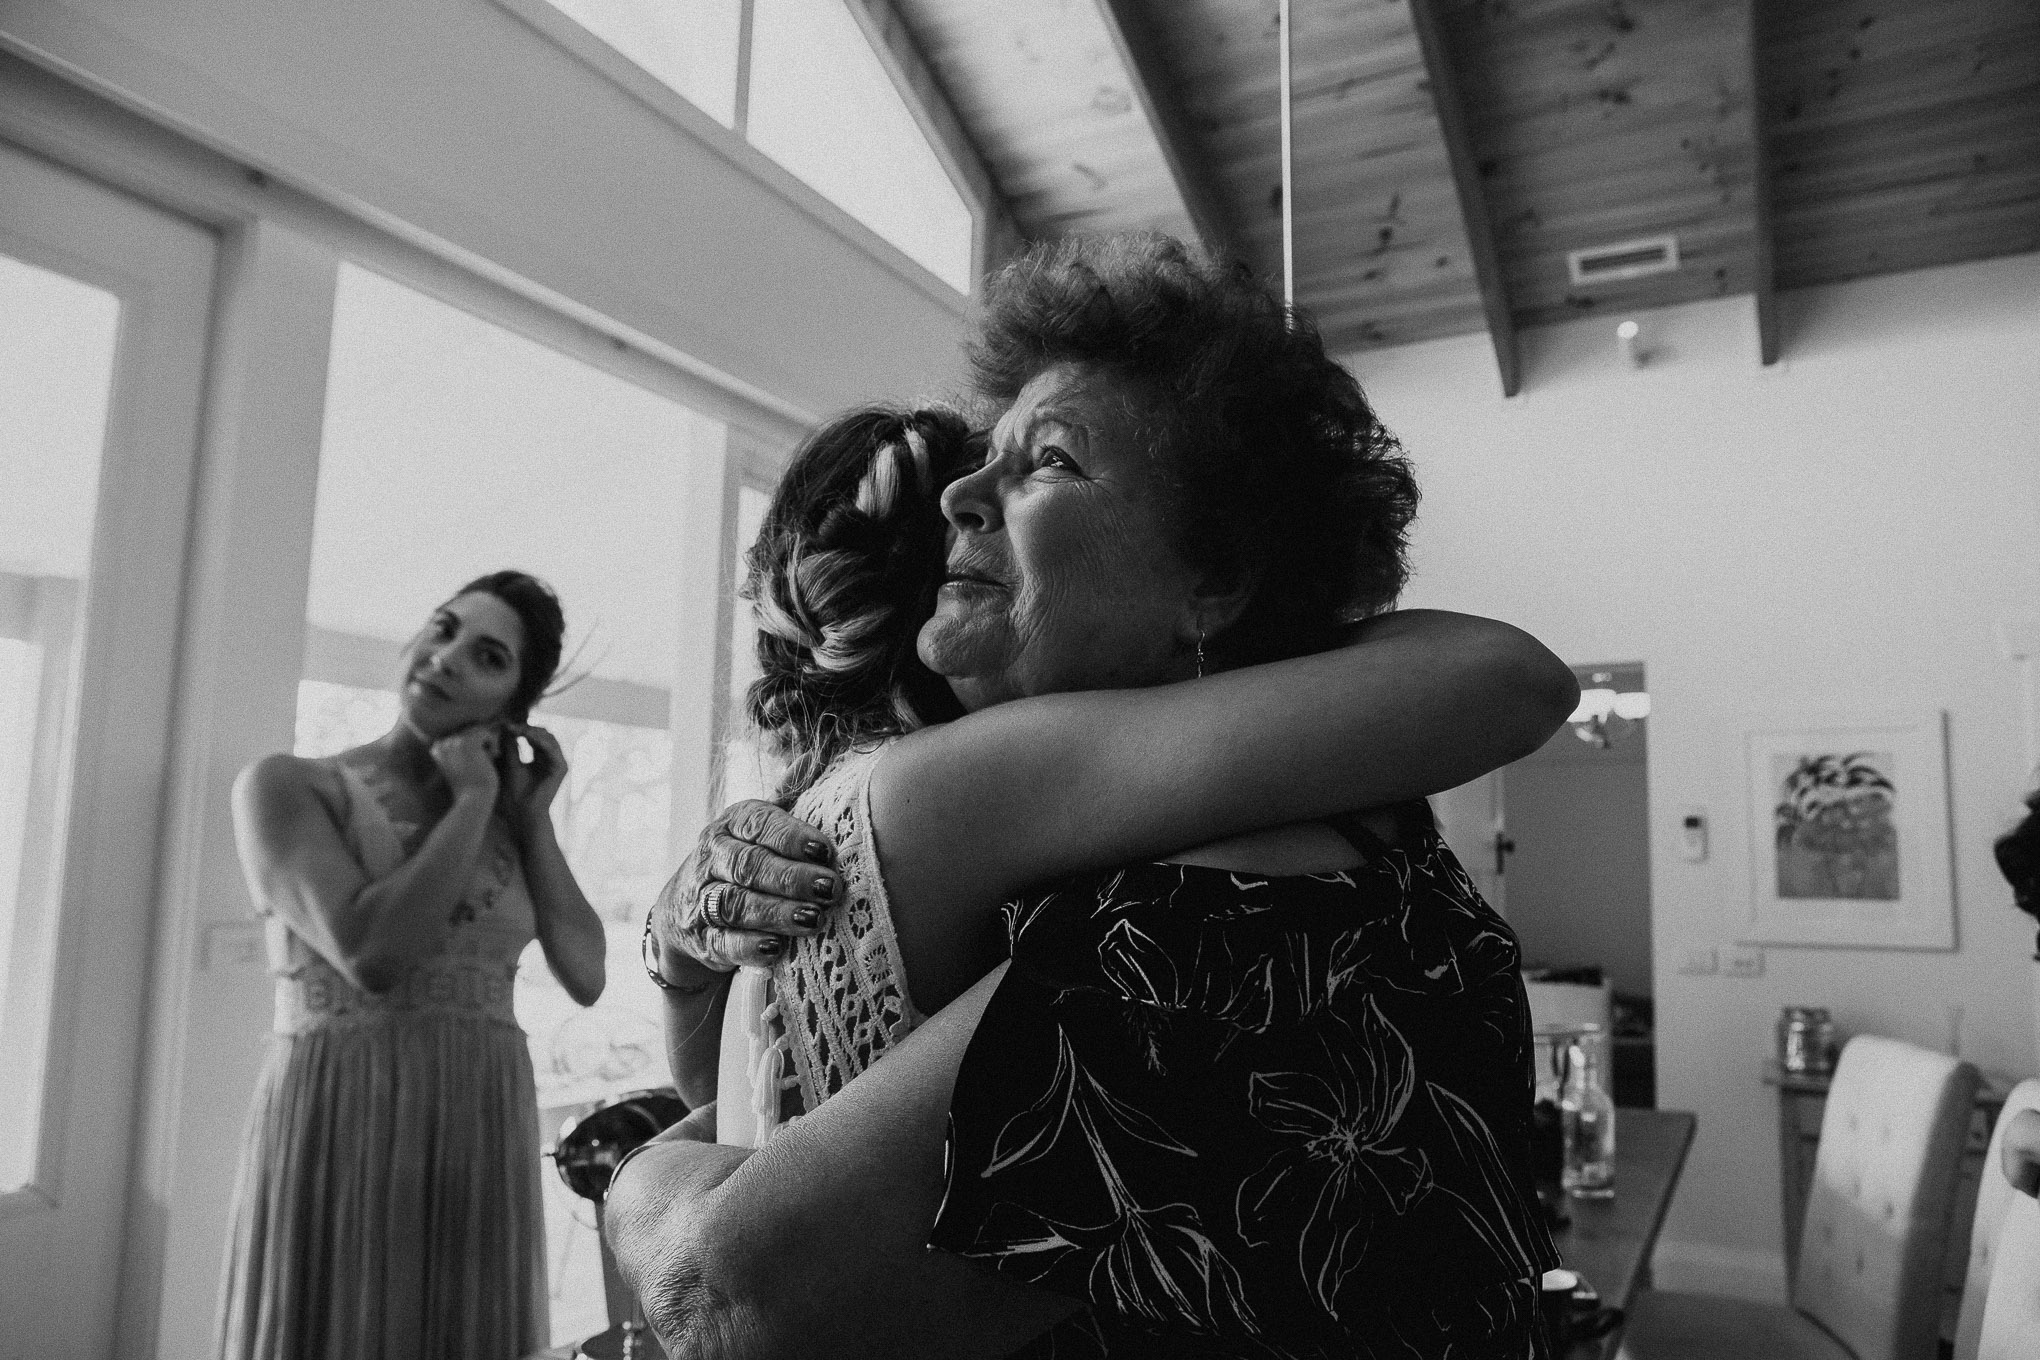 An emotional reunion between a bride and her grandmother on the morning of her wedding